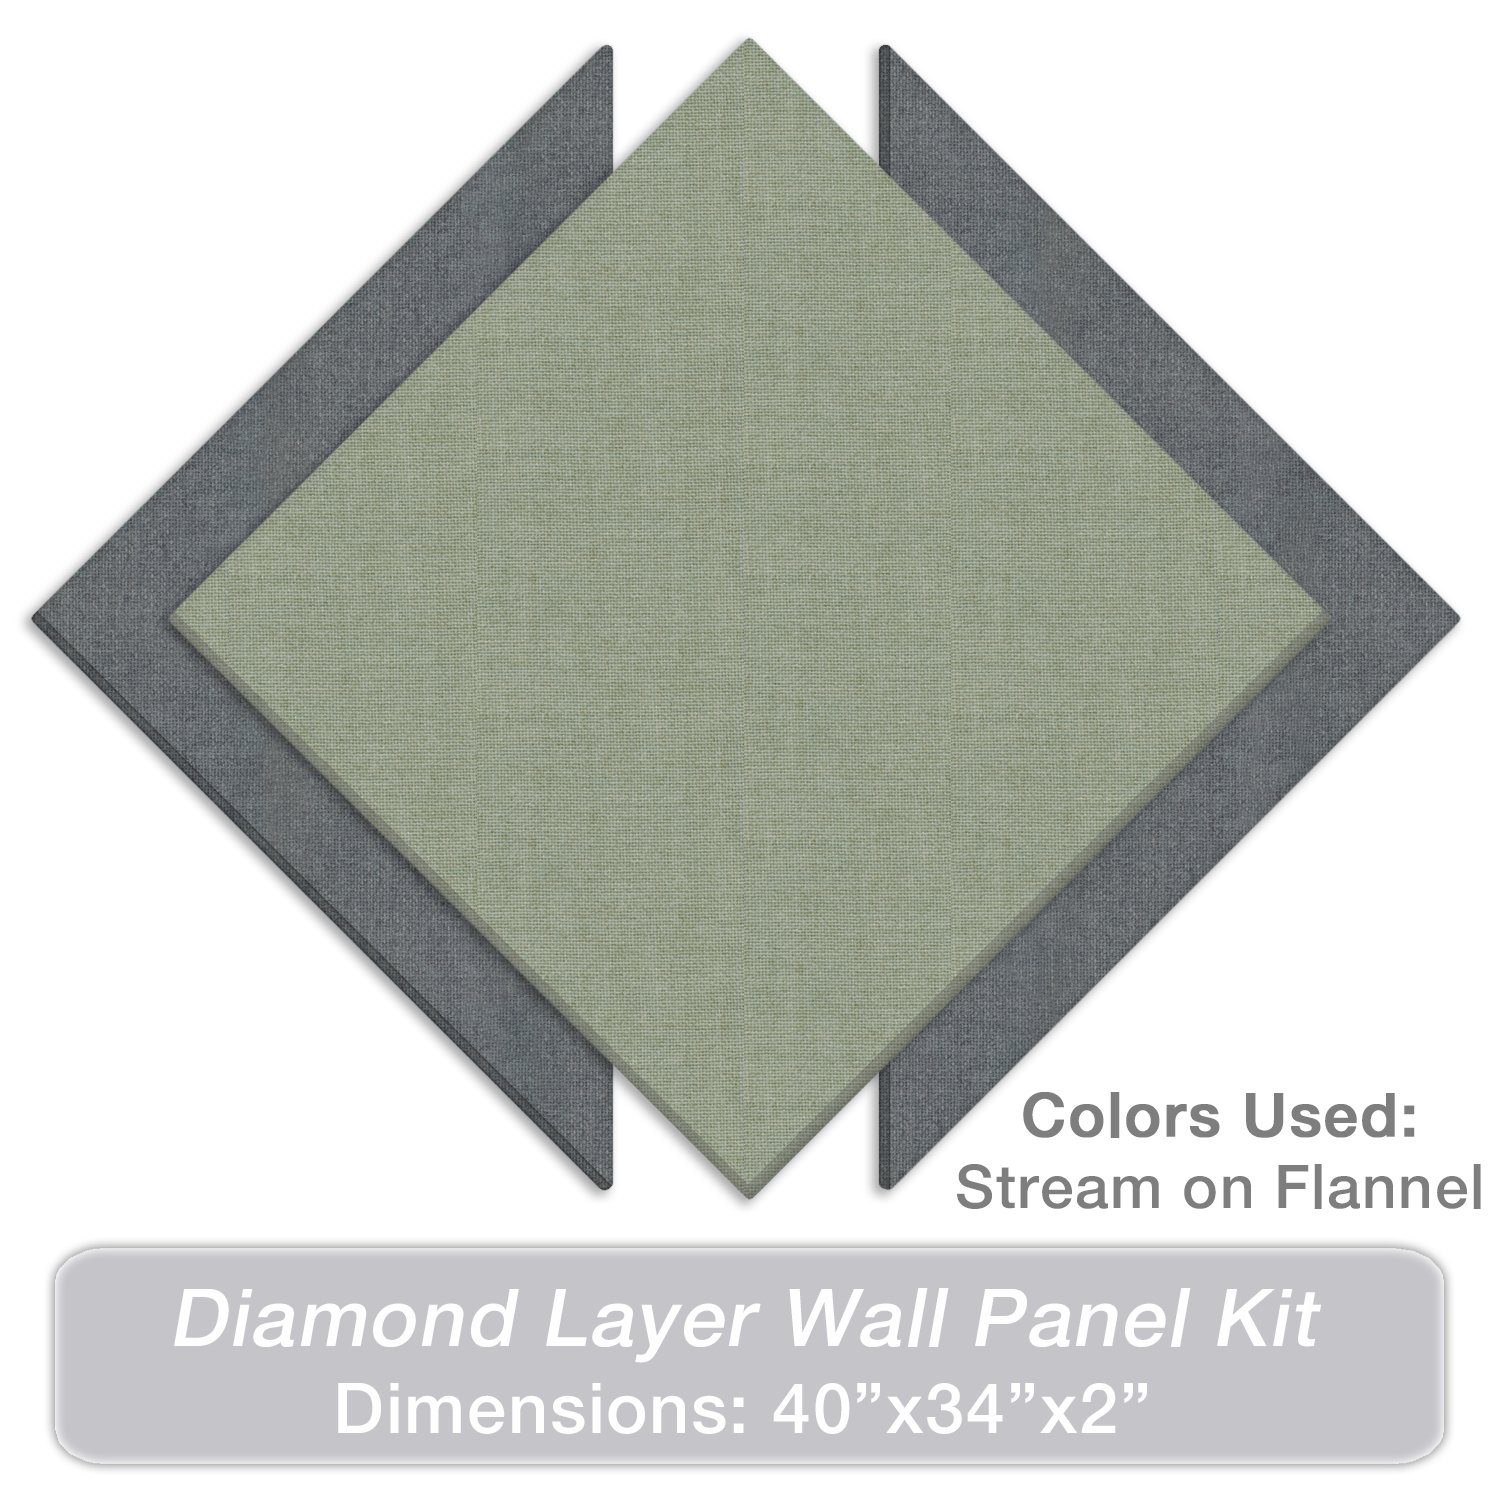 Cheap Diy Acoustic Panels Fabric Find Diy Acoustic Panels Fabric